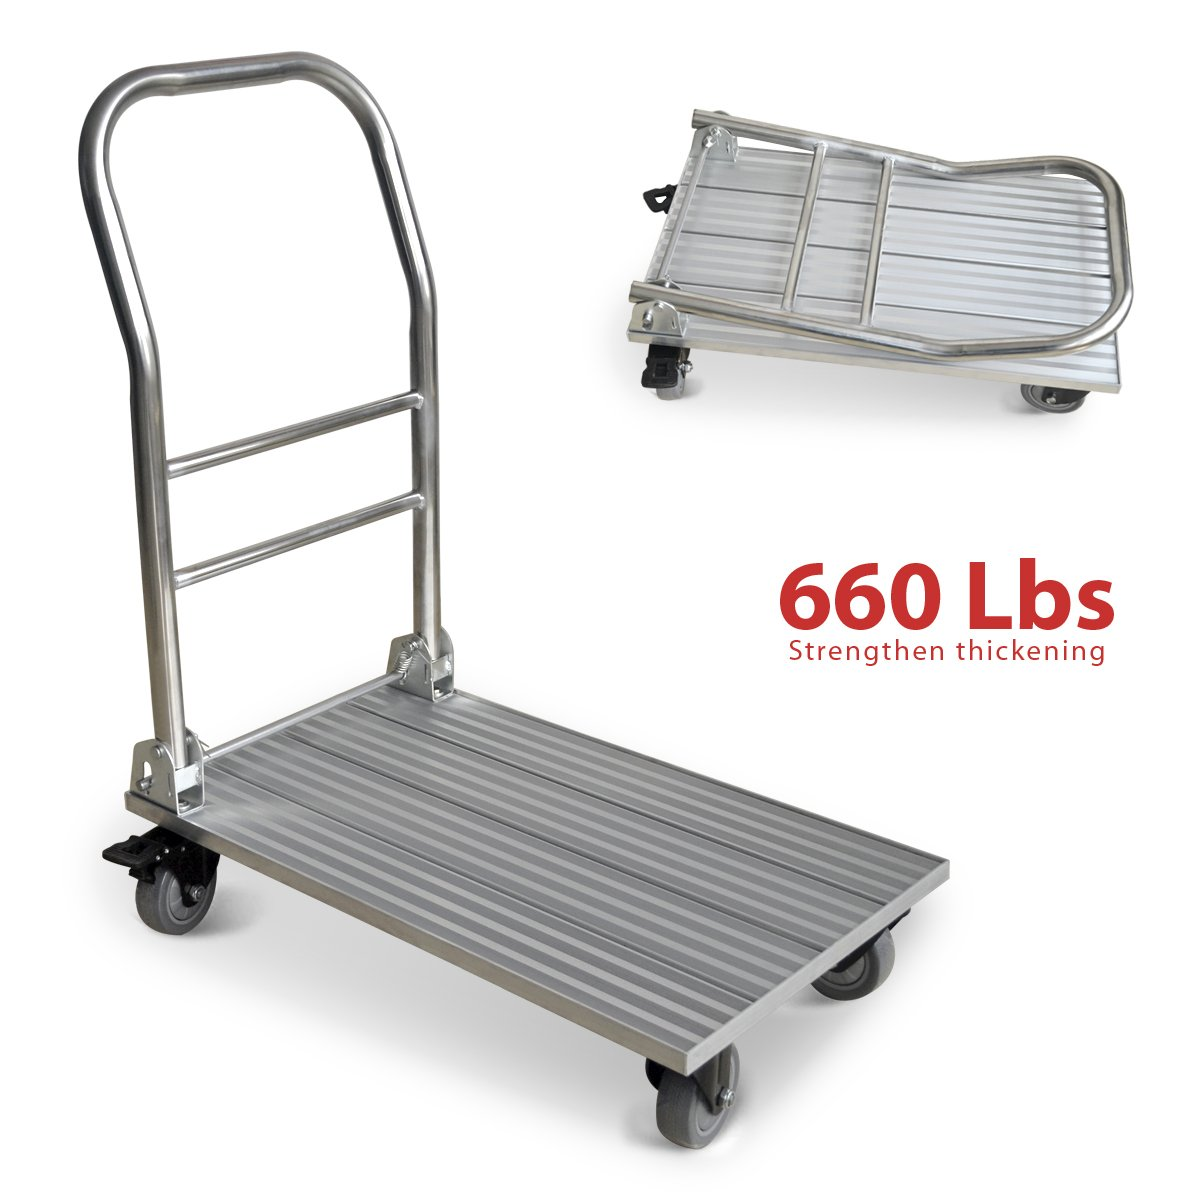 Vtuvia Folding Aluminum Platform Truck 660 lbs Foldable Push Dolly Moving Warehouse Hand Cart Lightweight Plate Trailer